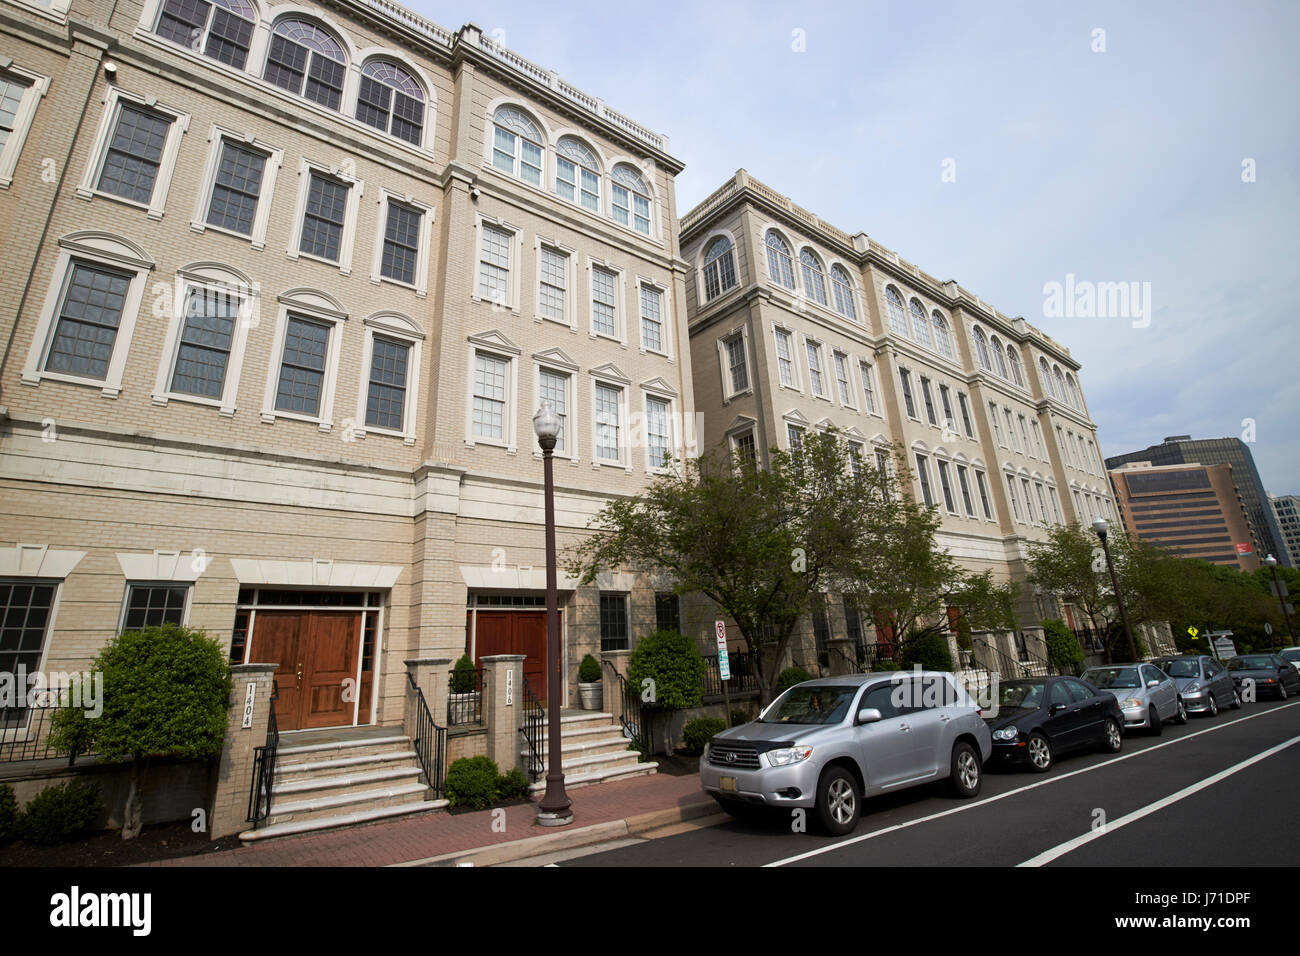 luxury expensive townhouses at radnor heights rosslyn arlington Washington DC USA - Stock Image